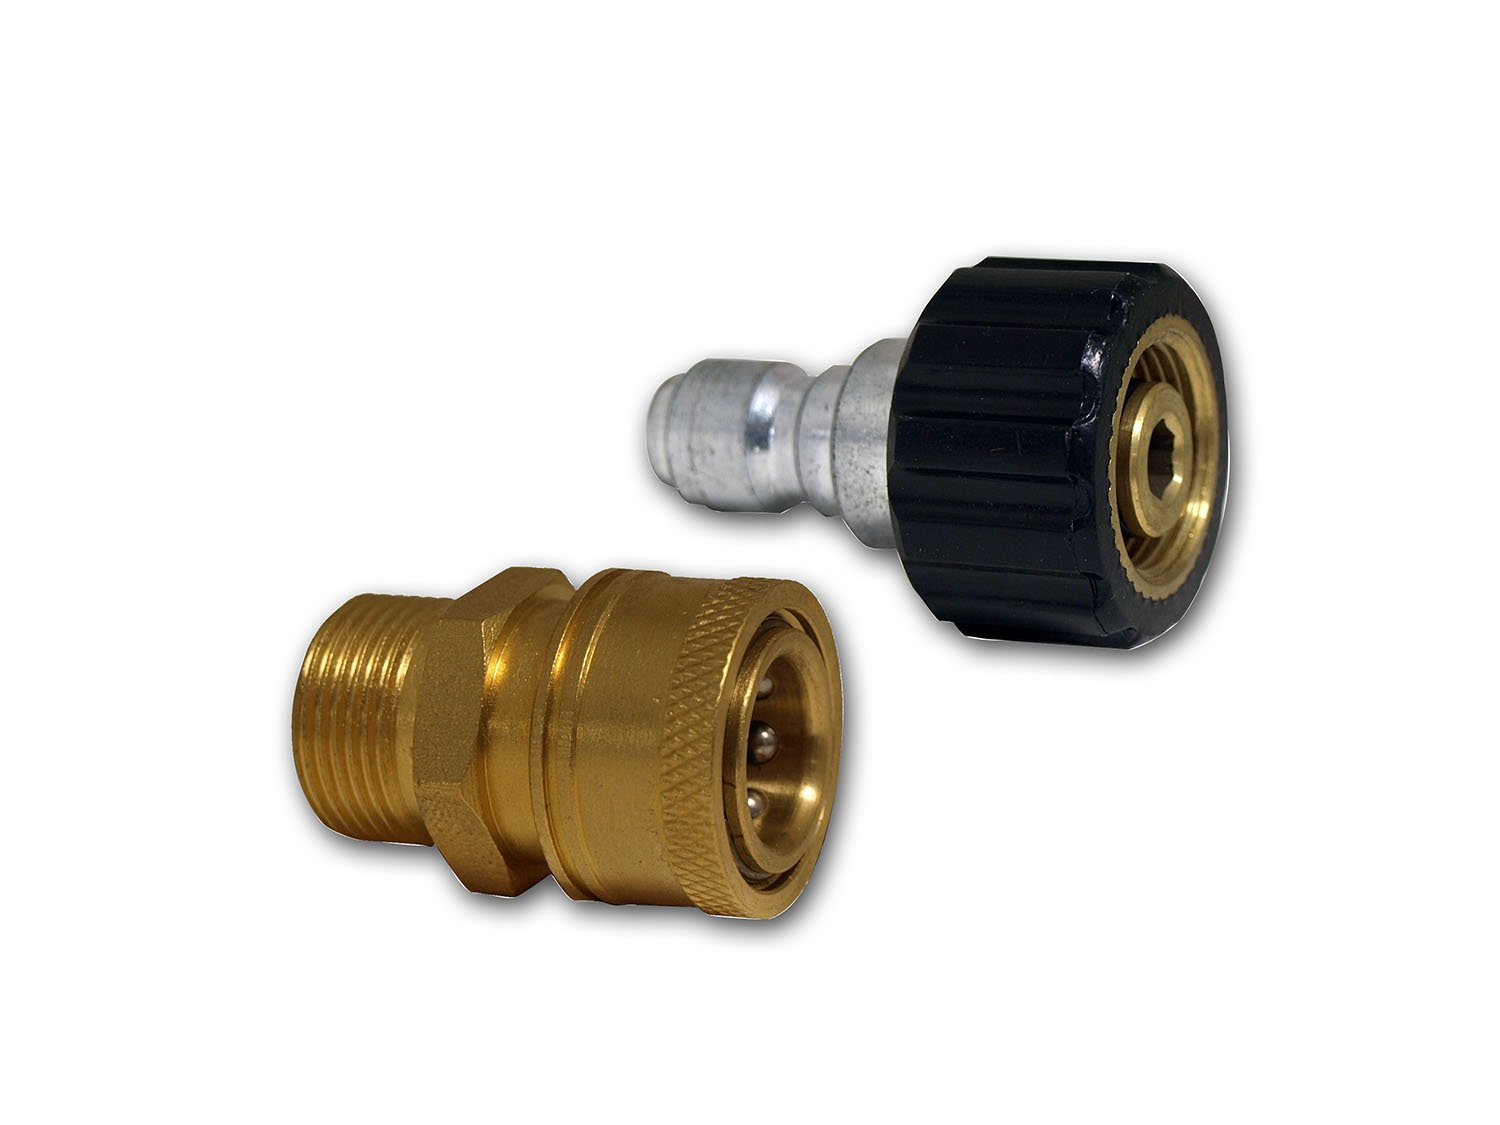 Apache 44048748Female Metric x 3 8 Quick Disconnect Socket Plug Pressure Washer Adapter Set